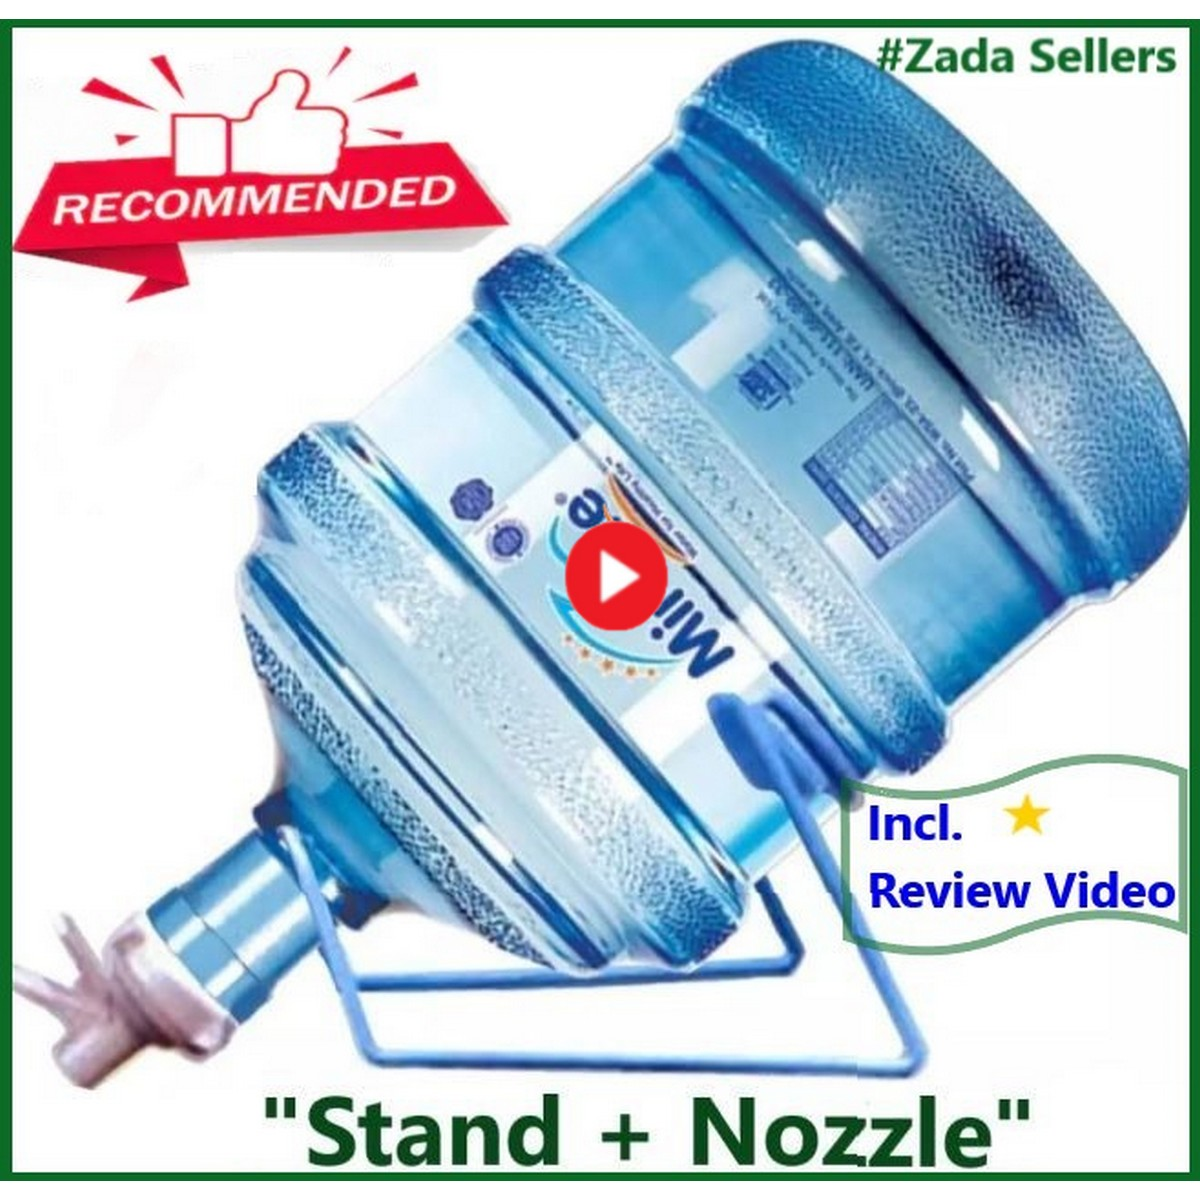 19 L Liter Water Bottle Stand And + Nozzle / Dispenser Valve / Tap for 19L Litre Large water bottles - 19 Ltr - Water bottel  Stand And Nozzle - High Quality Water bottle Holder+nozzle For ~ 19 / 20 Litter Cans - Shop with Zada Sellers - Multicolor